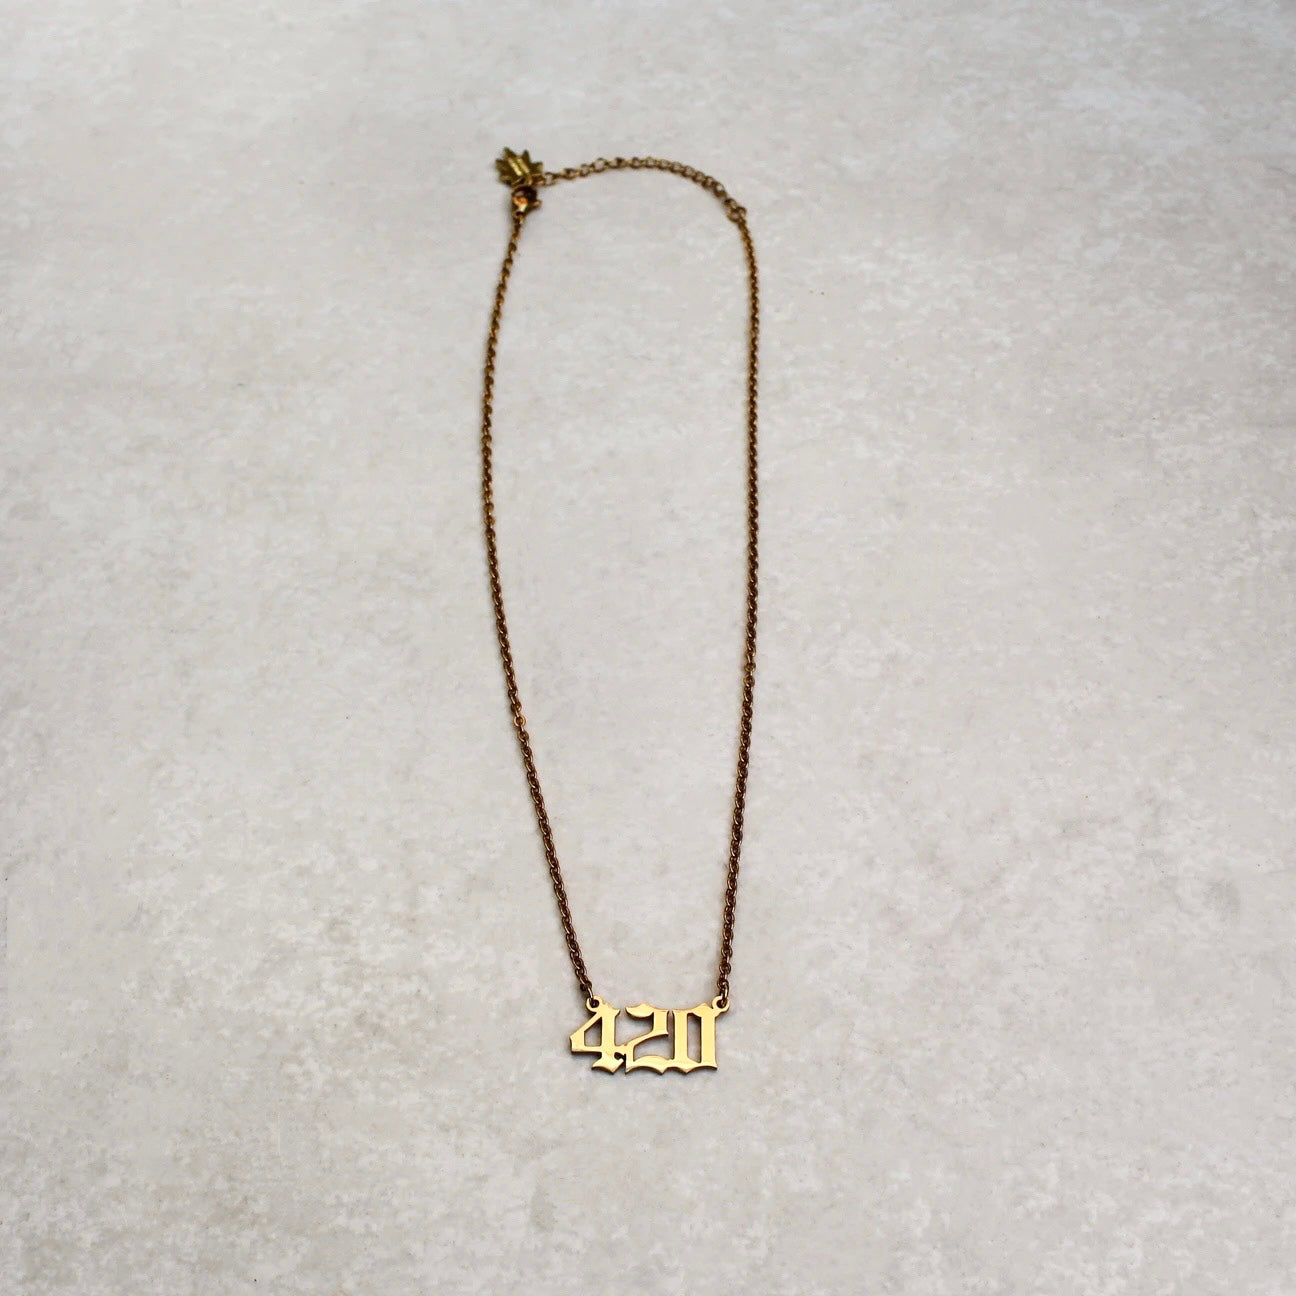 420 Statement Necklace - Gold